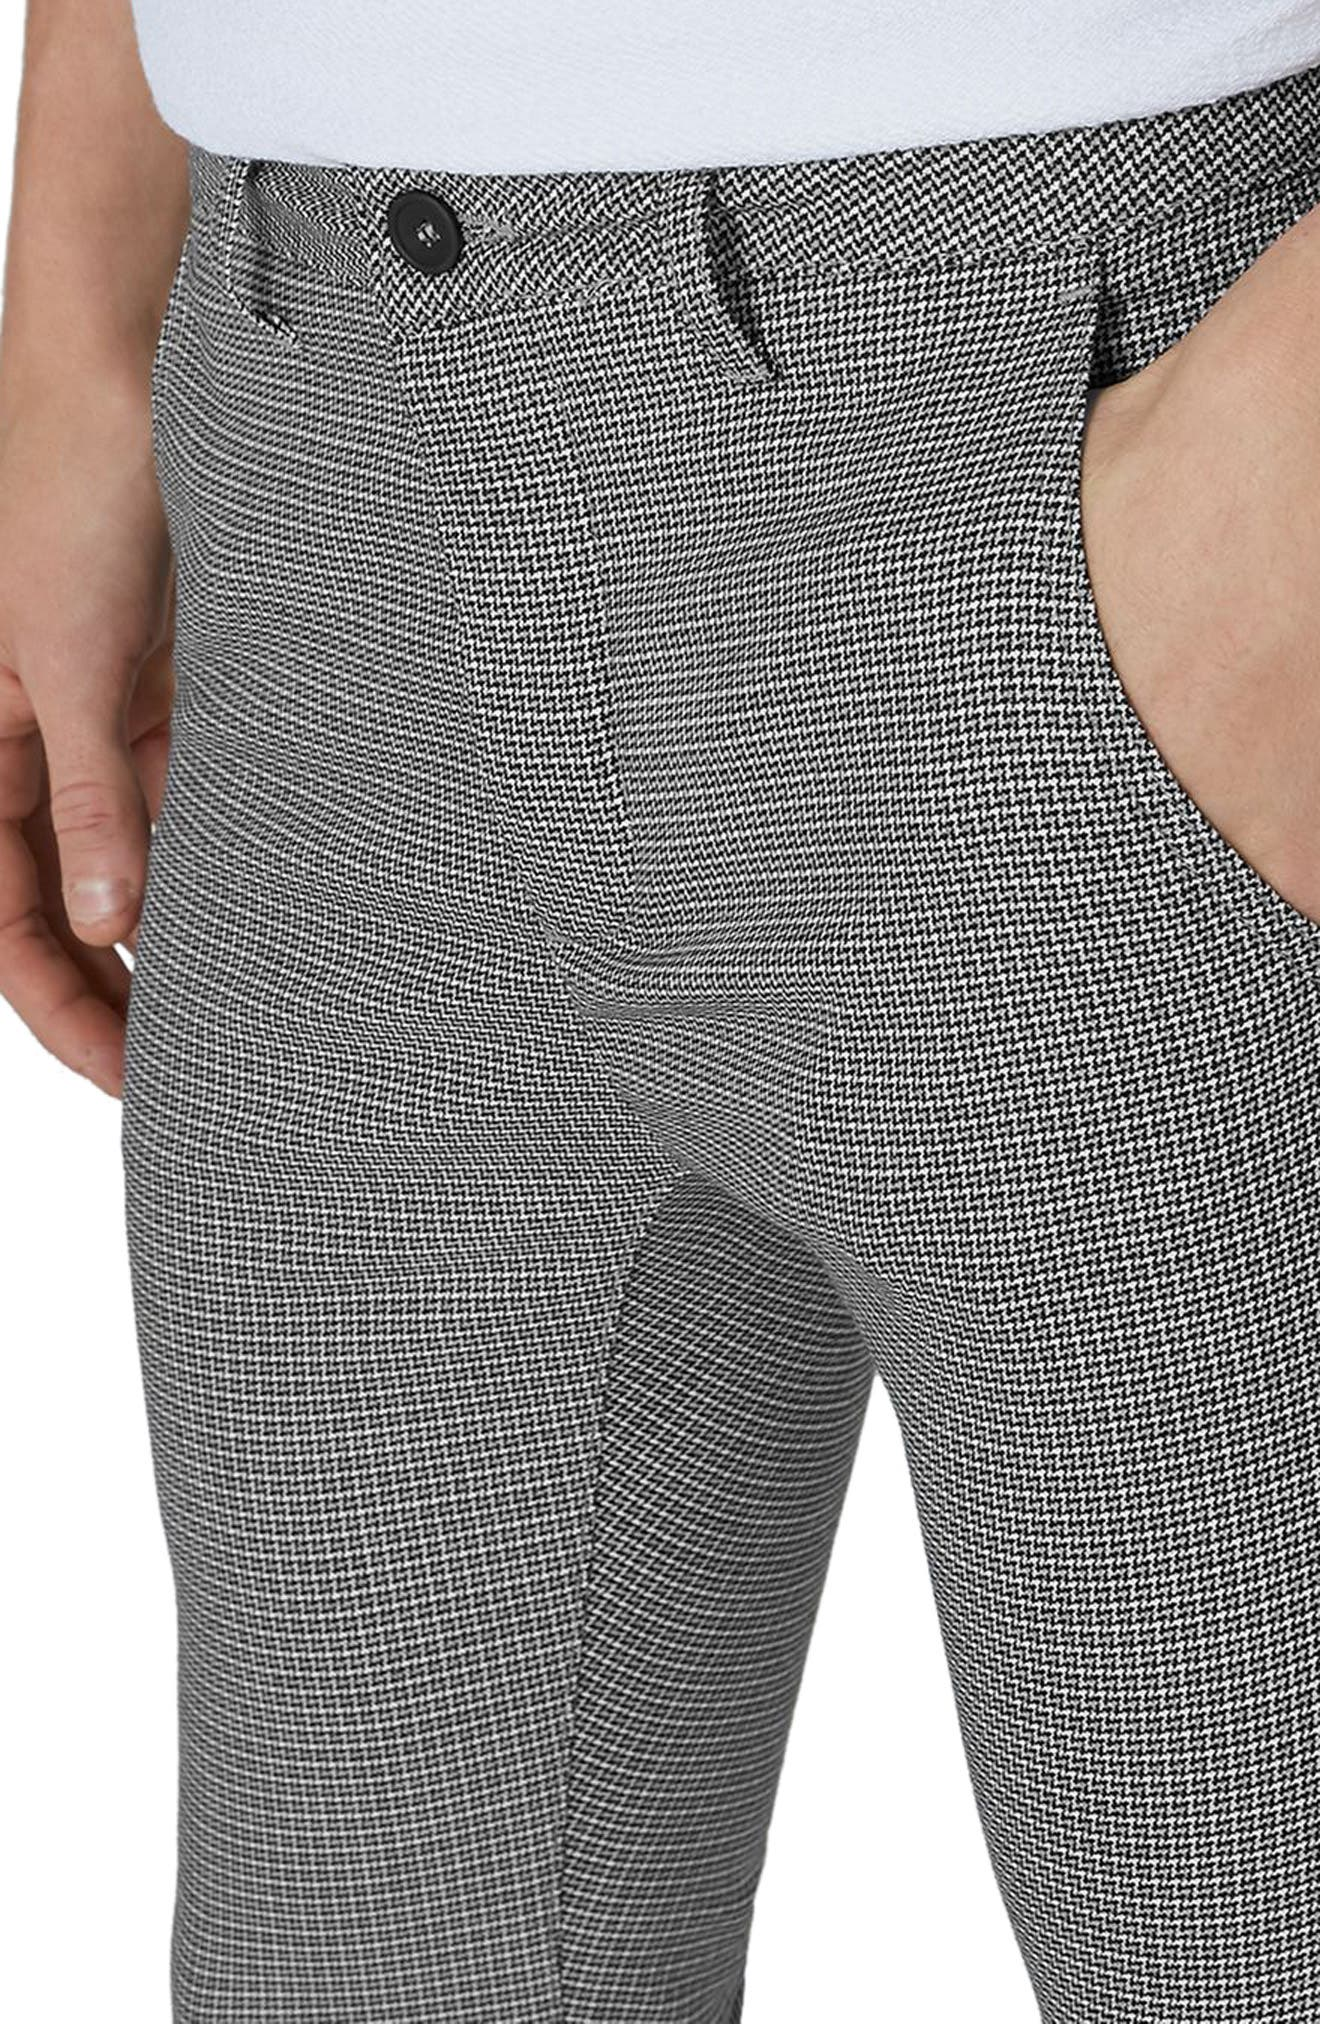 Mini Houndstooth Stretch Skinny Fit Trousers,                             Alternate thumbnail 3, color,                             Grey Multi